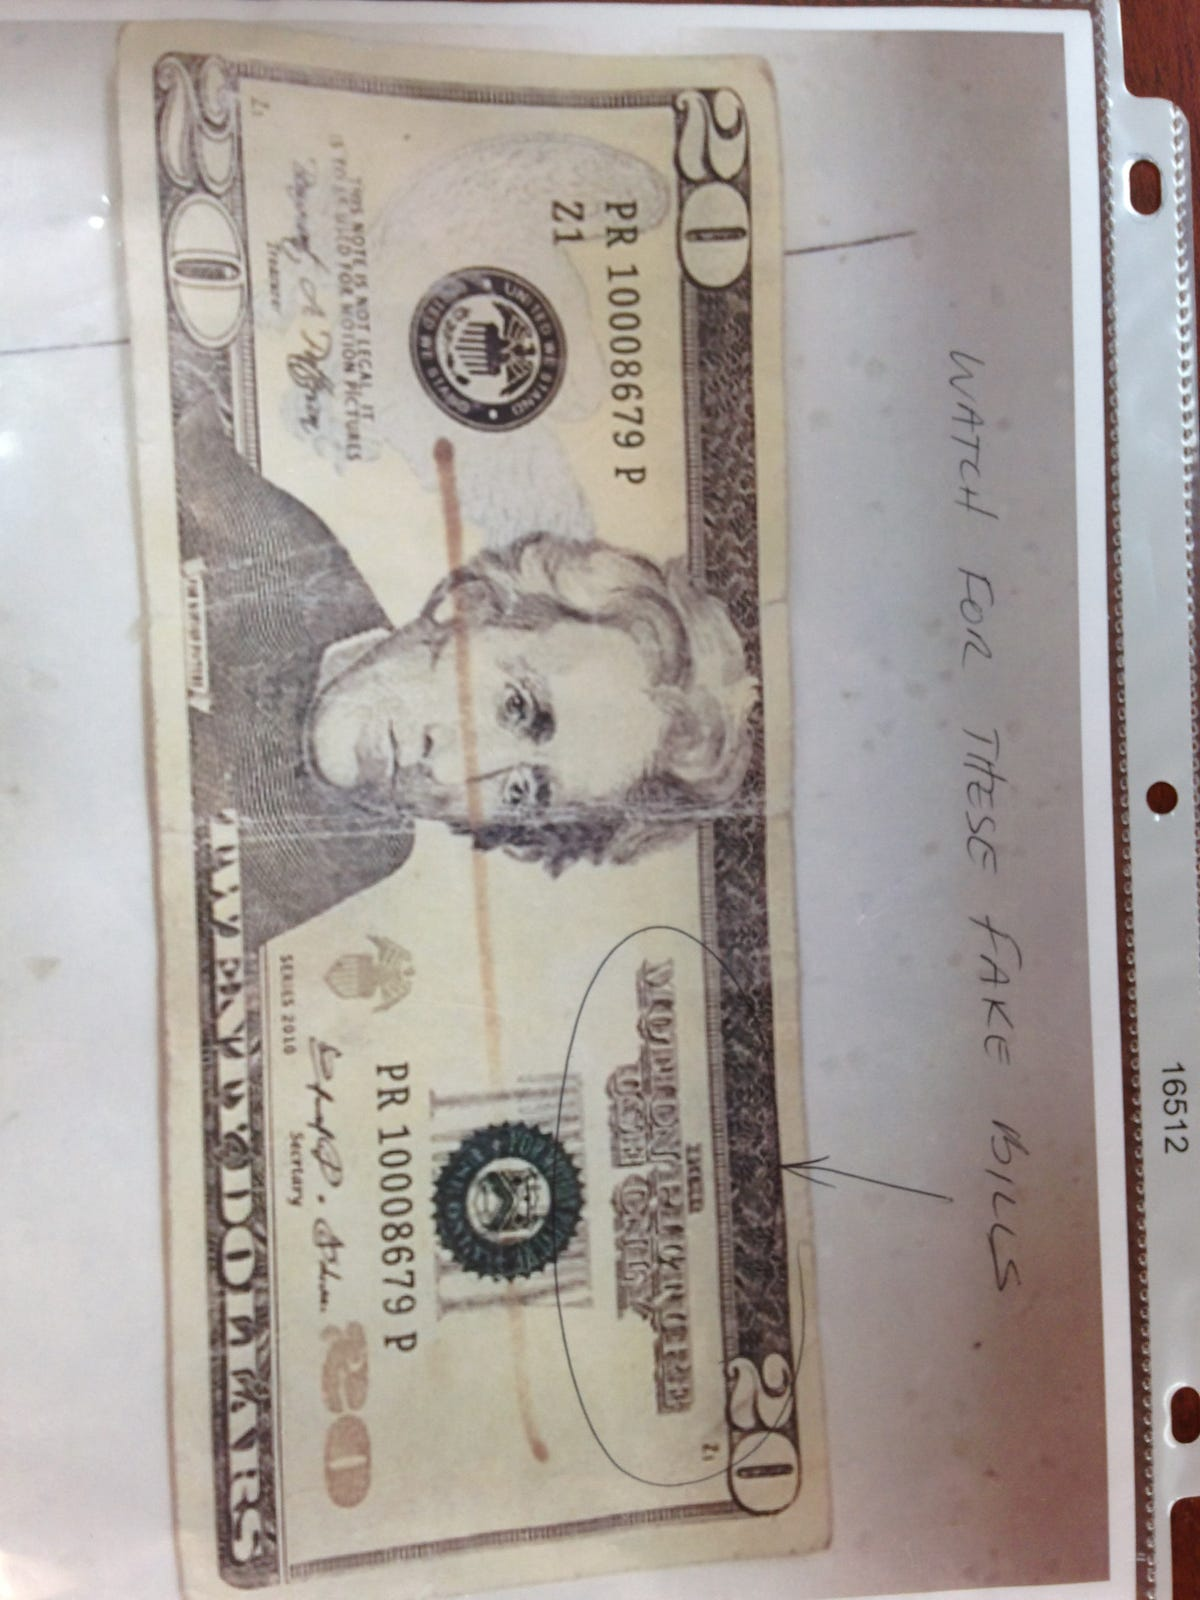 Tell Mel: Movie prop money passing for real cash,